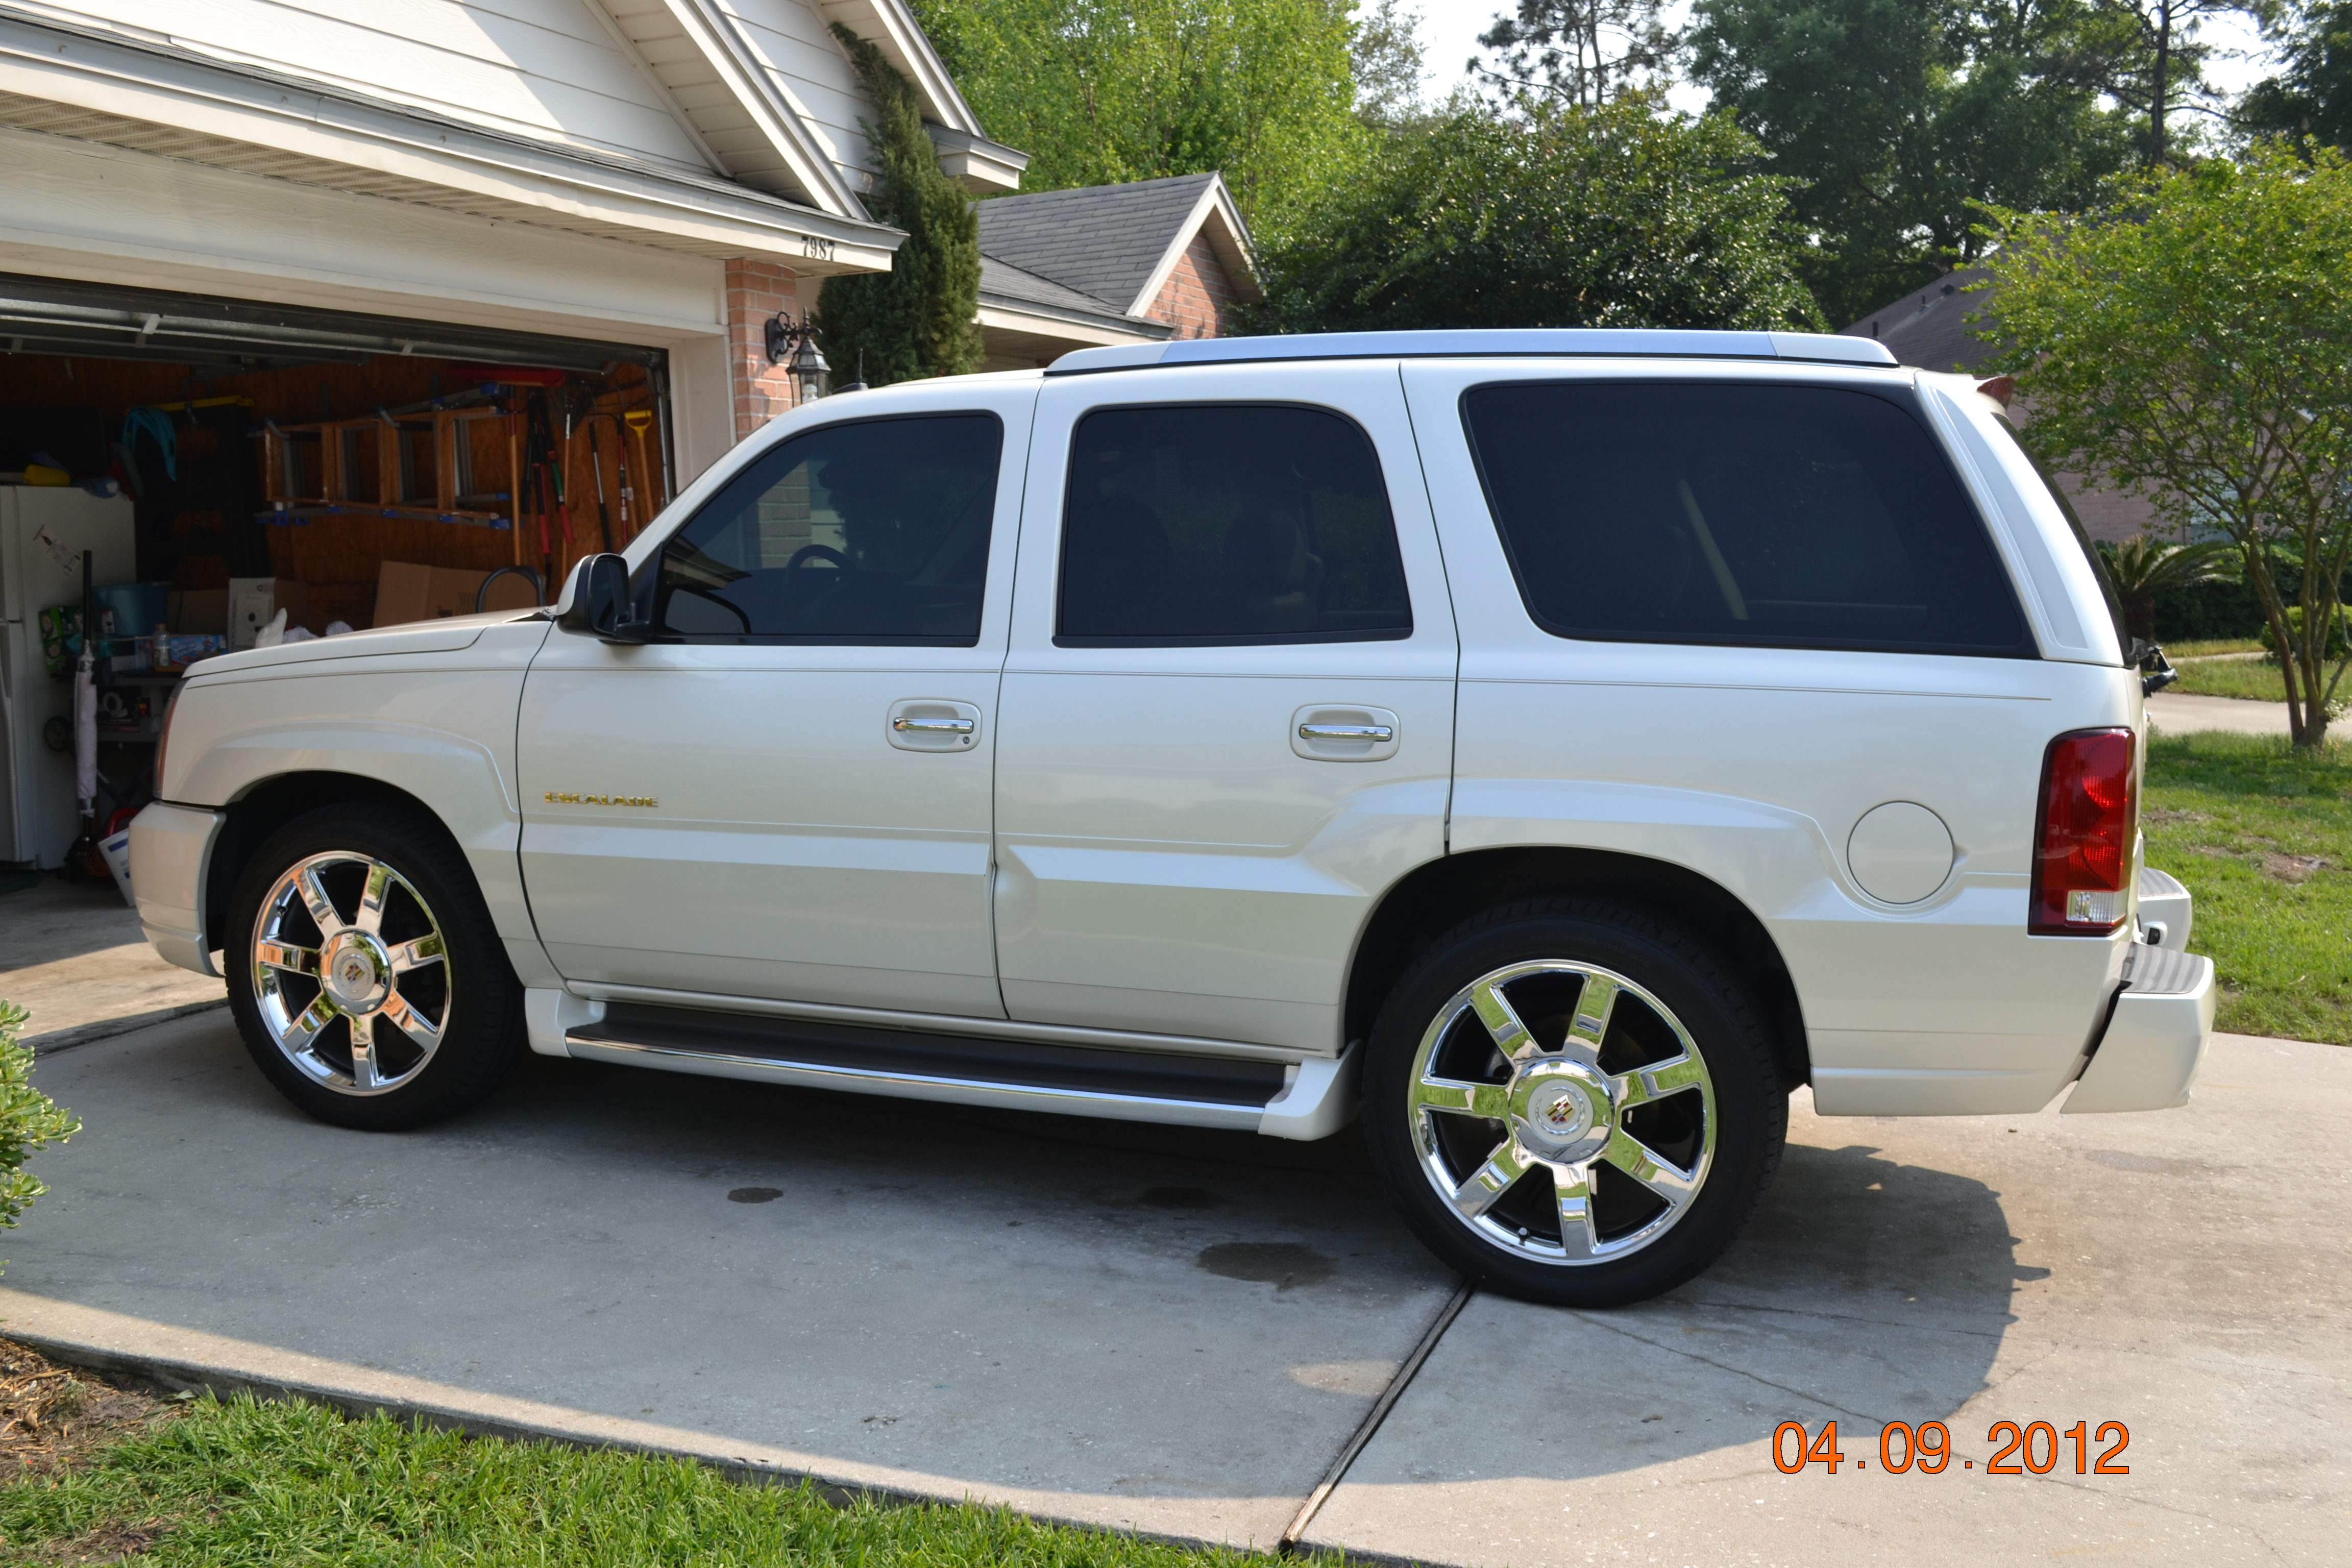 White Escalade With Black Rims Re  got 22 quot  platinum rims onWhite Escalade With Black Rims